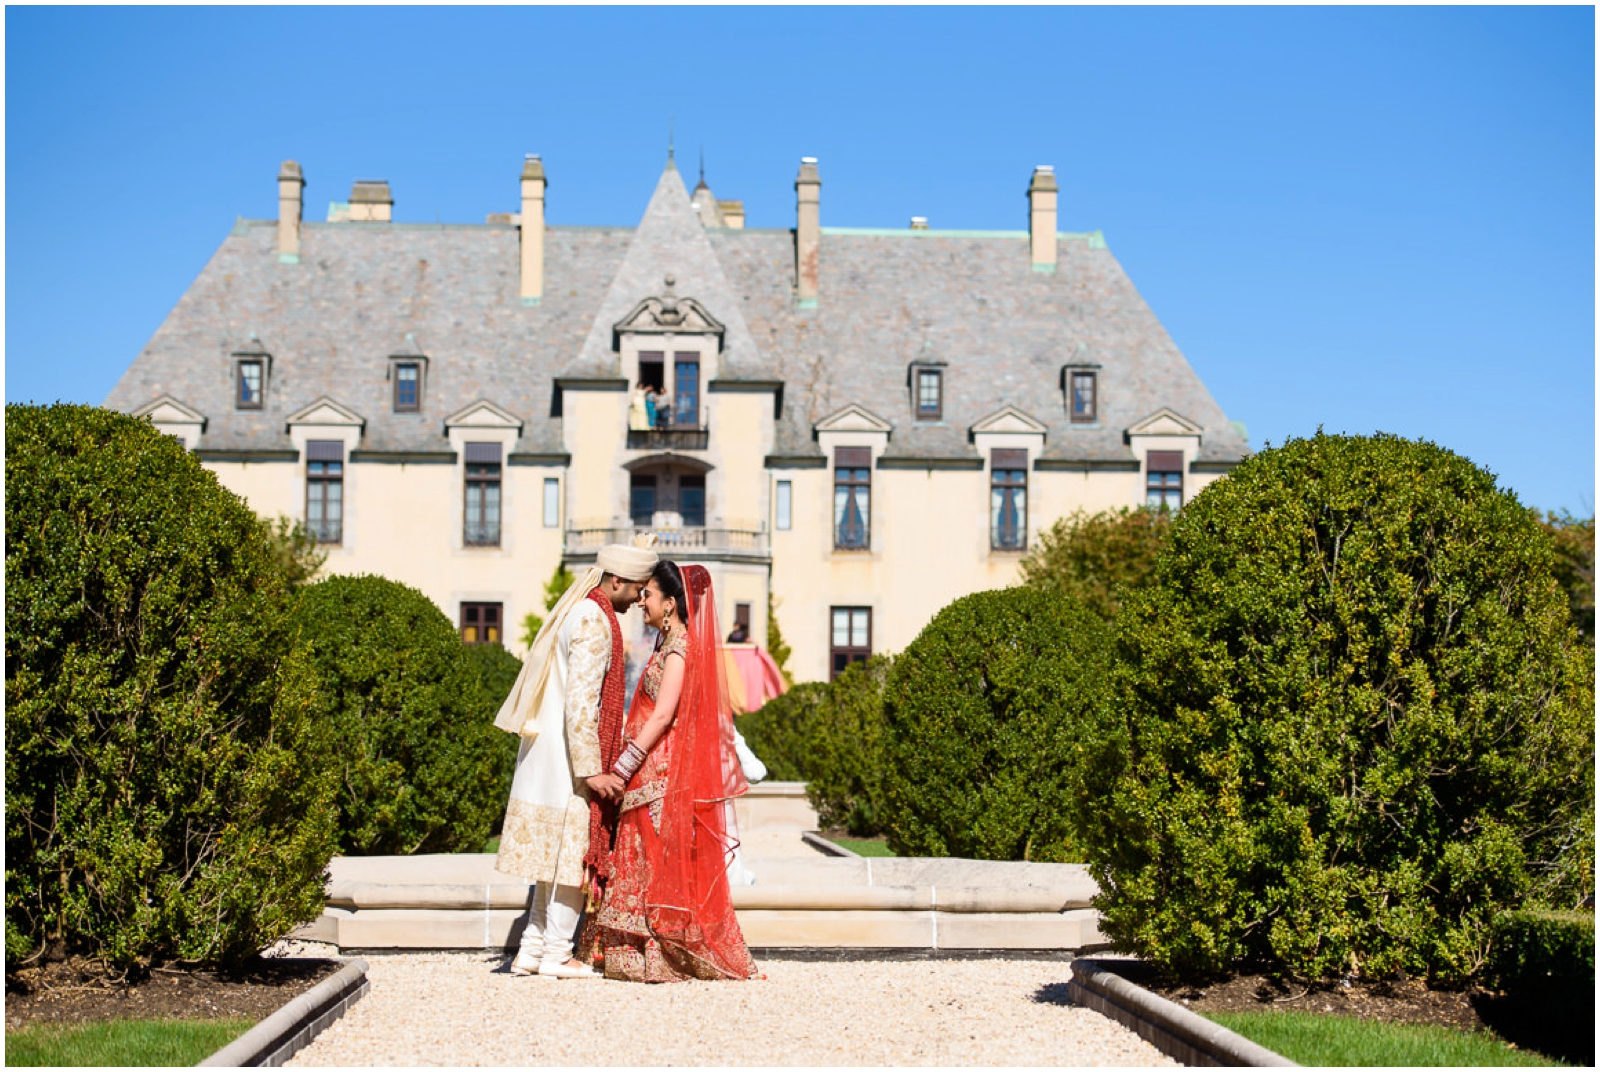 oheka castle a sing photography wedding